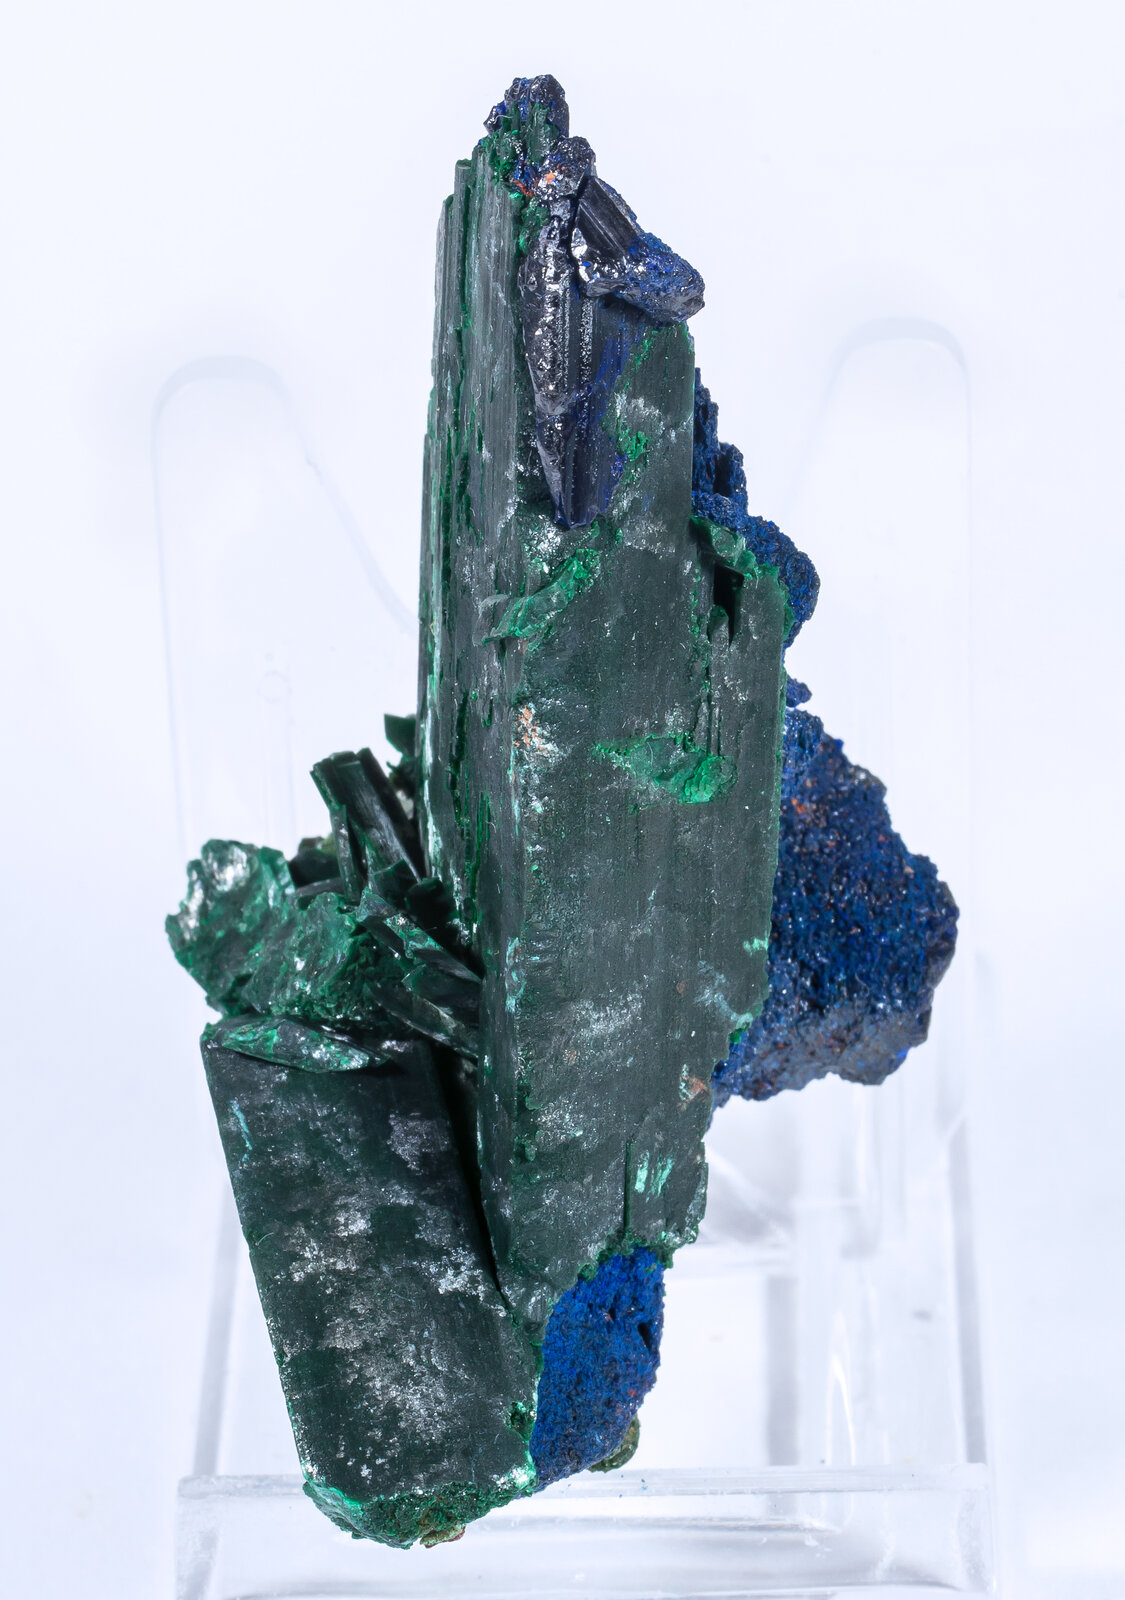 specimens/s_imagesAM8/Azurite-TT66AM8s.jpg